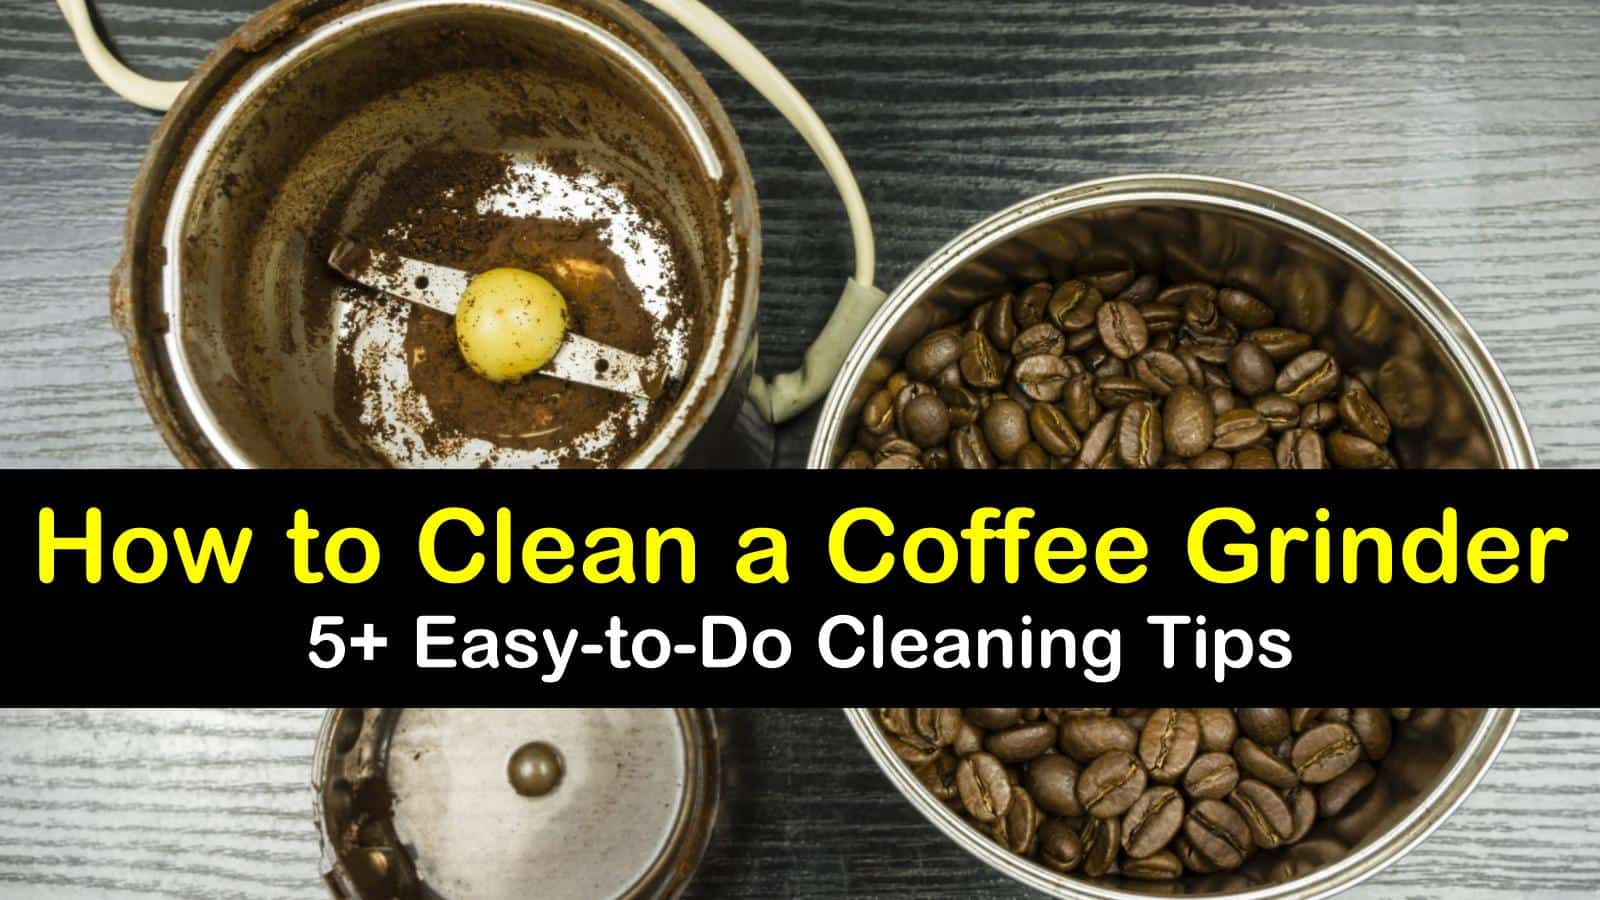 how to clean a coffee grinder titleimg1